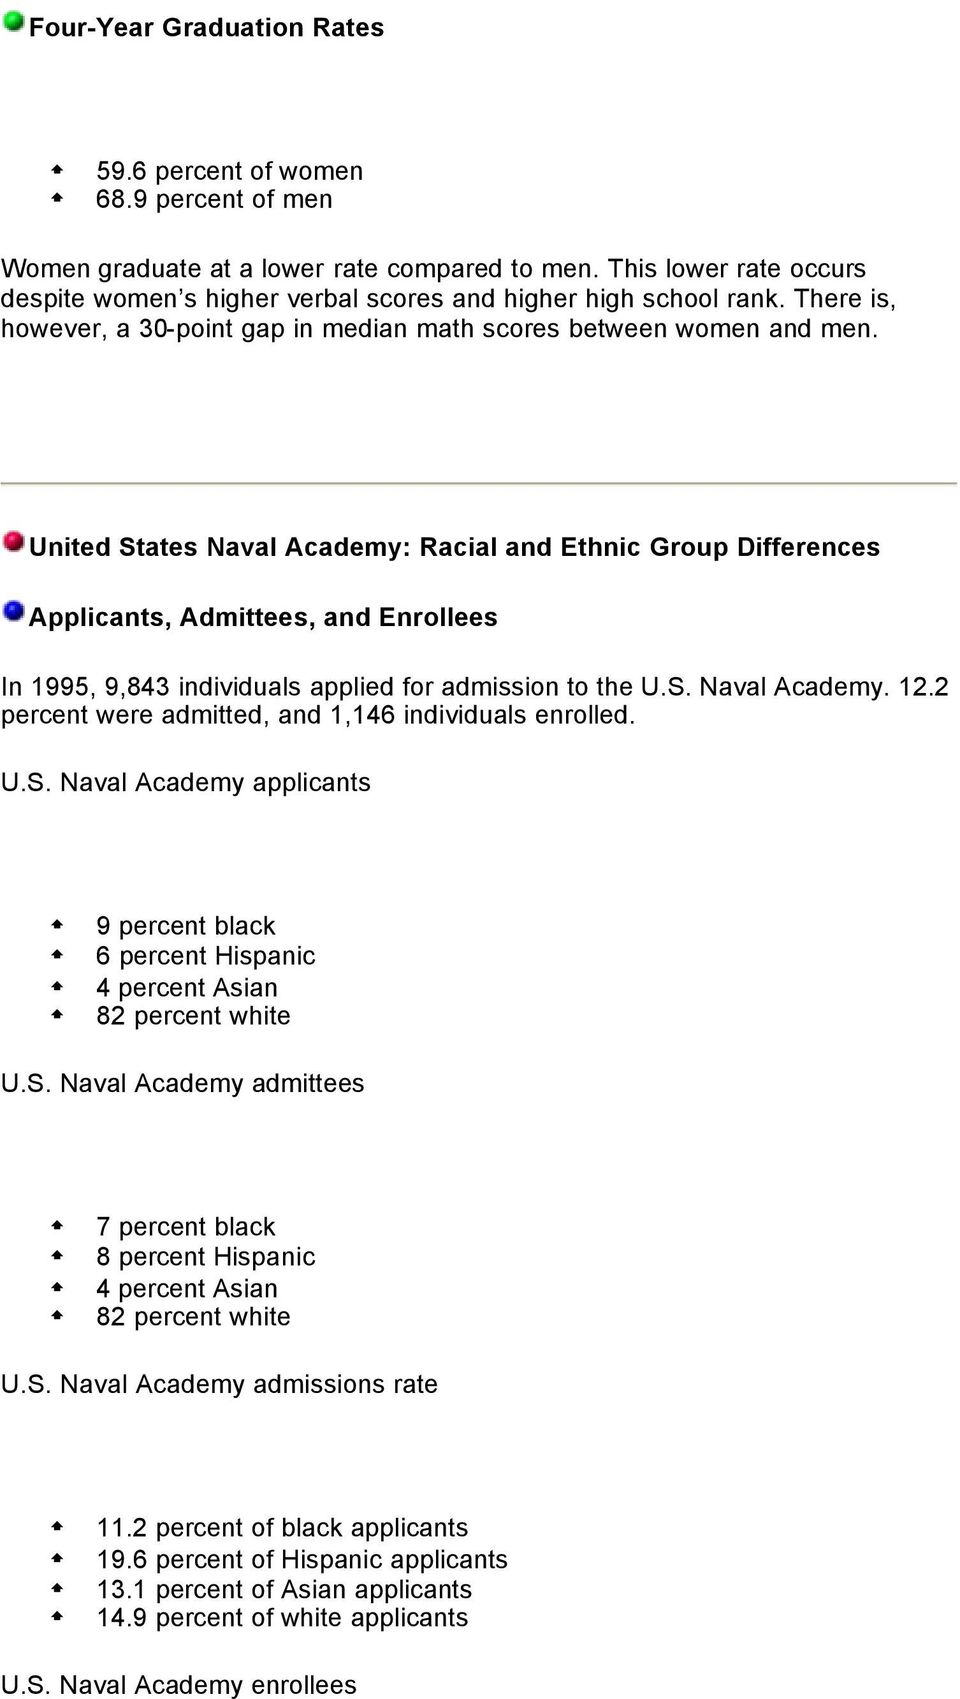 United States Naval Academy: Racial and Ethnic Group Differences Applicants, Admittees, and Enrollees In 1995, 9,843 individuals applied for admission to the U.S. Naval Academy. 12.